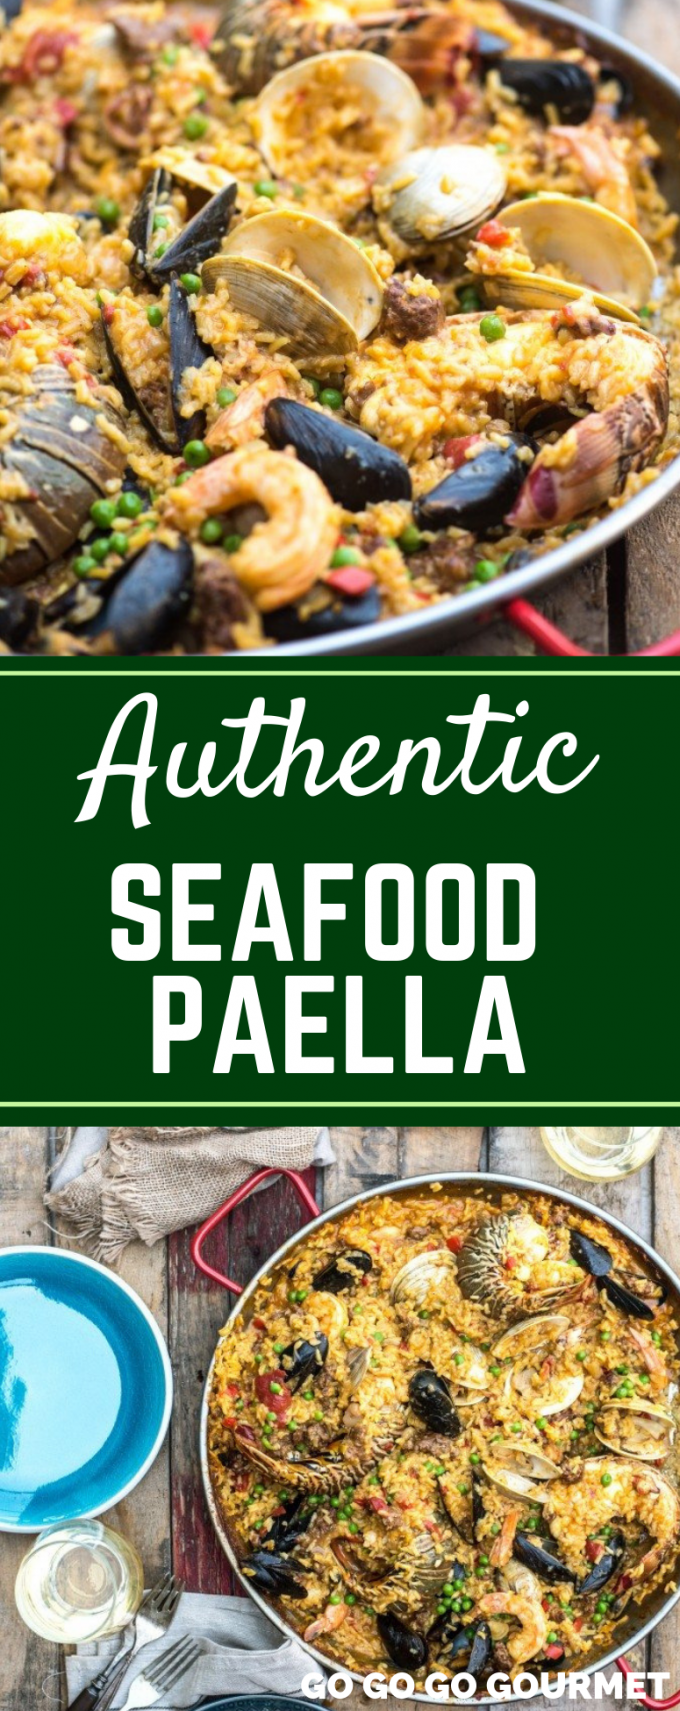 This easy Seafood Paella recipe has authentic Spanish flavor with lobster and lots of other delicious seafood! This traditional dish is also made with chorizo for a complete meal. #gogogogourmet #seafoodpaella #easydinnerrecipes #authenticseafoodpaella via @gogogogourmet